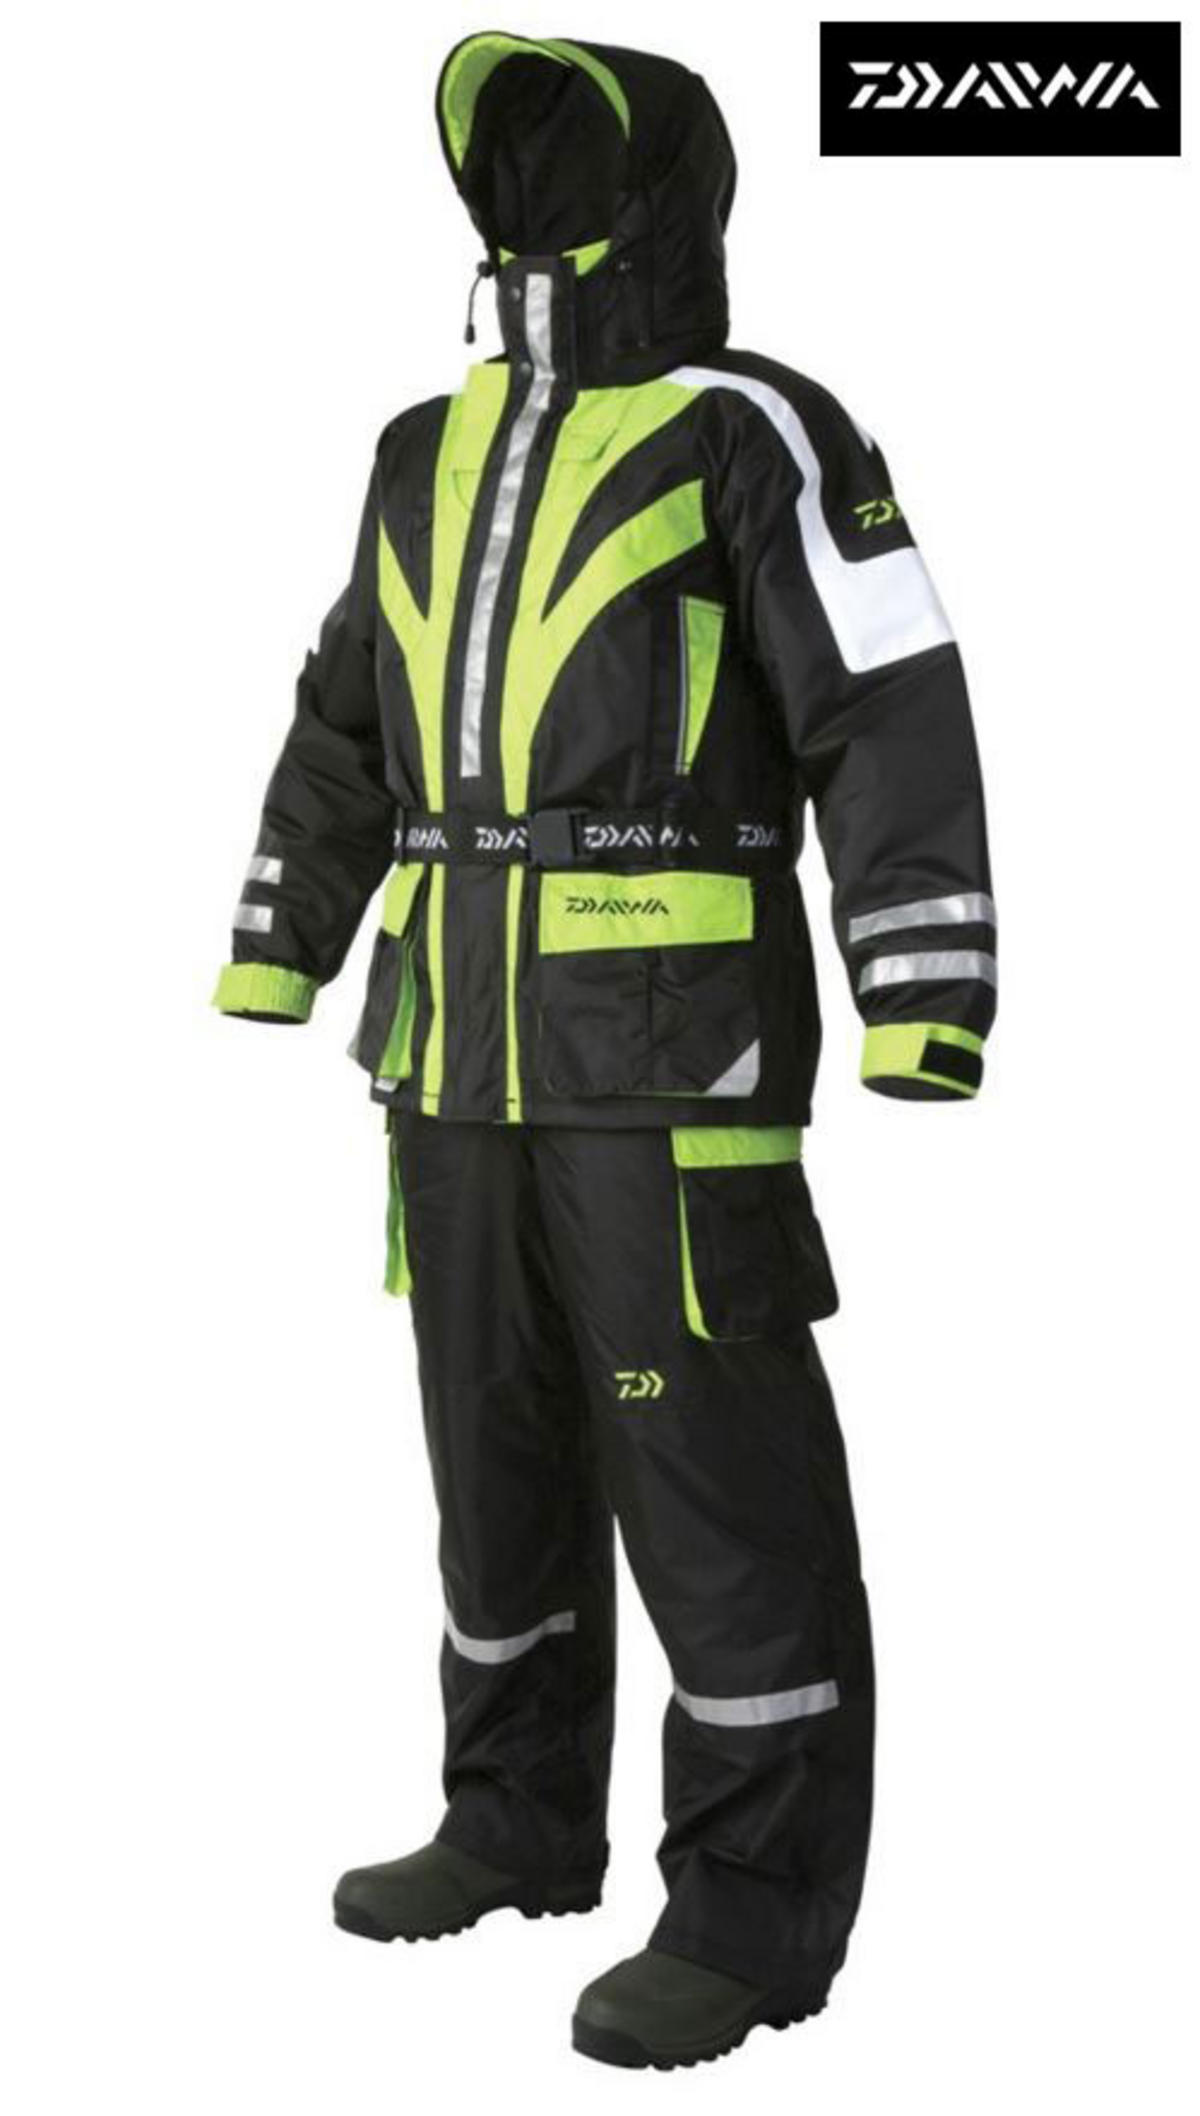 DAIWA CROSSFLOW PRO BREATHABLE 2PC FLOTATION SUIT WITH FREE BISON UNDERSUIT